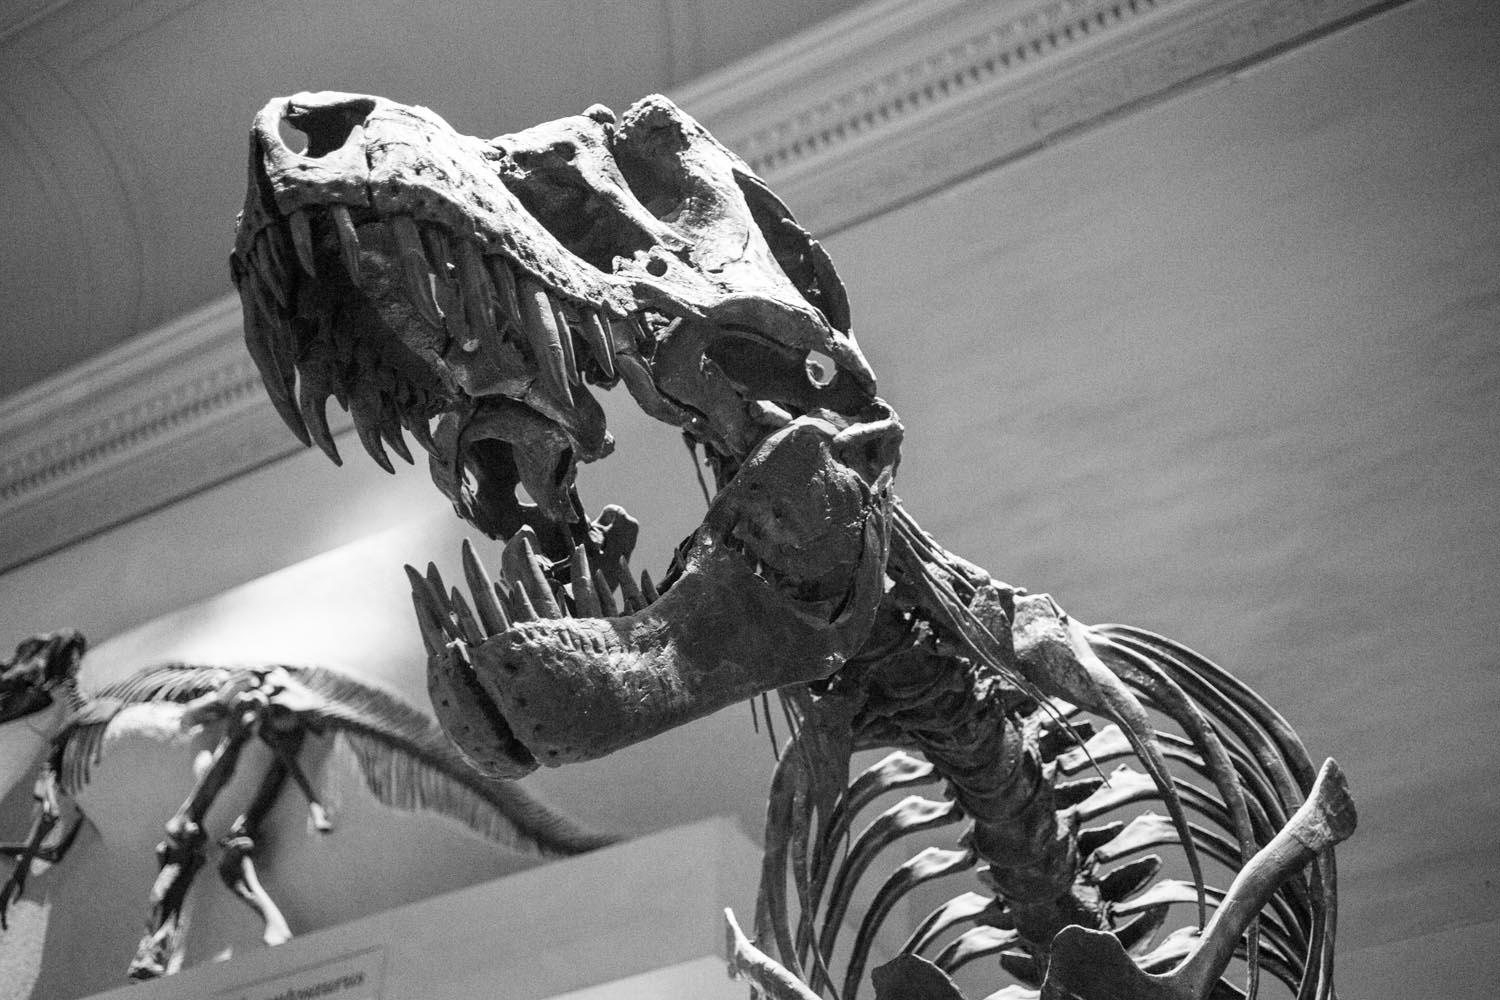 Washington National History Museum TREX